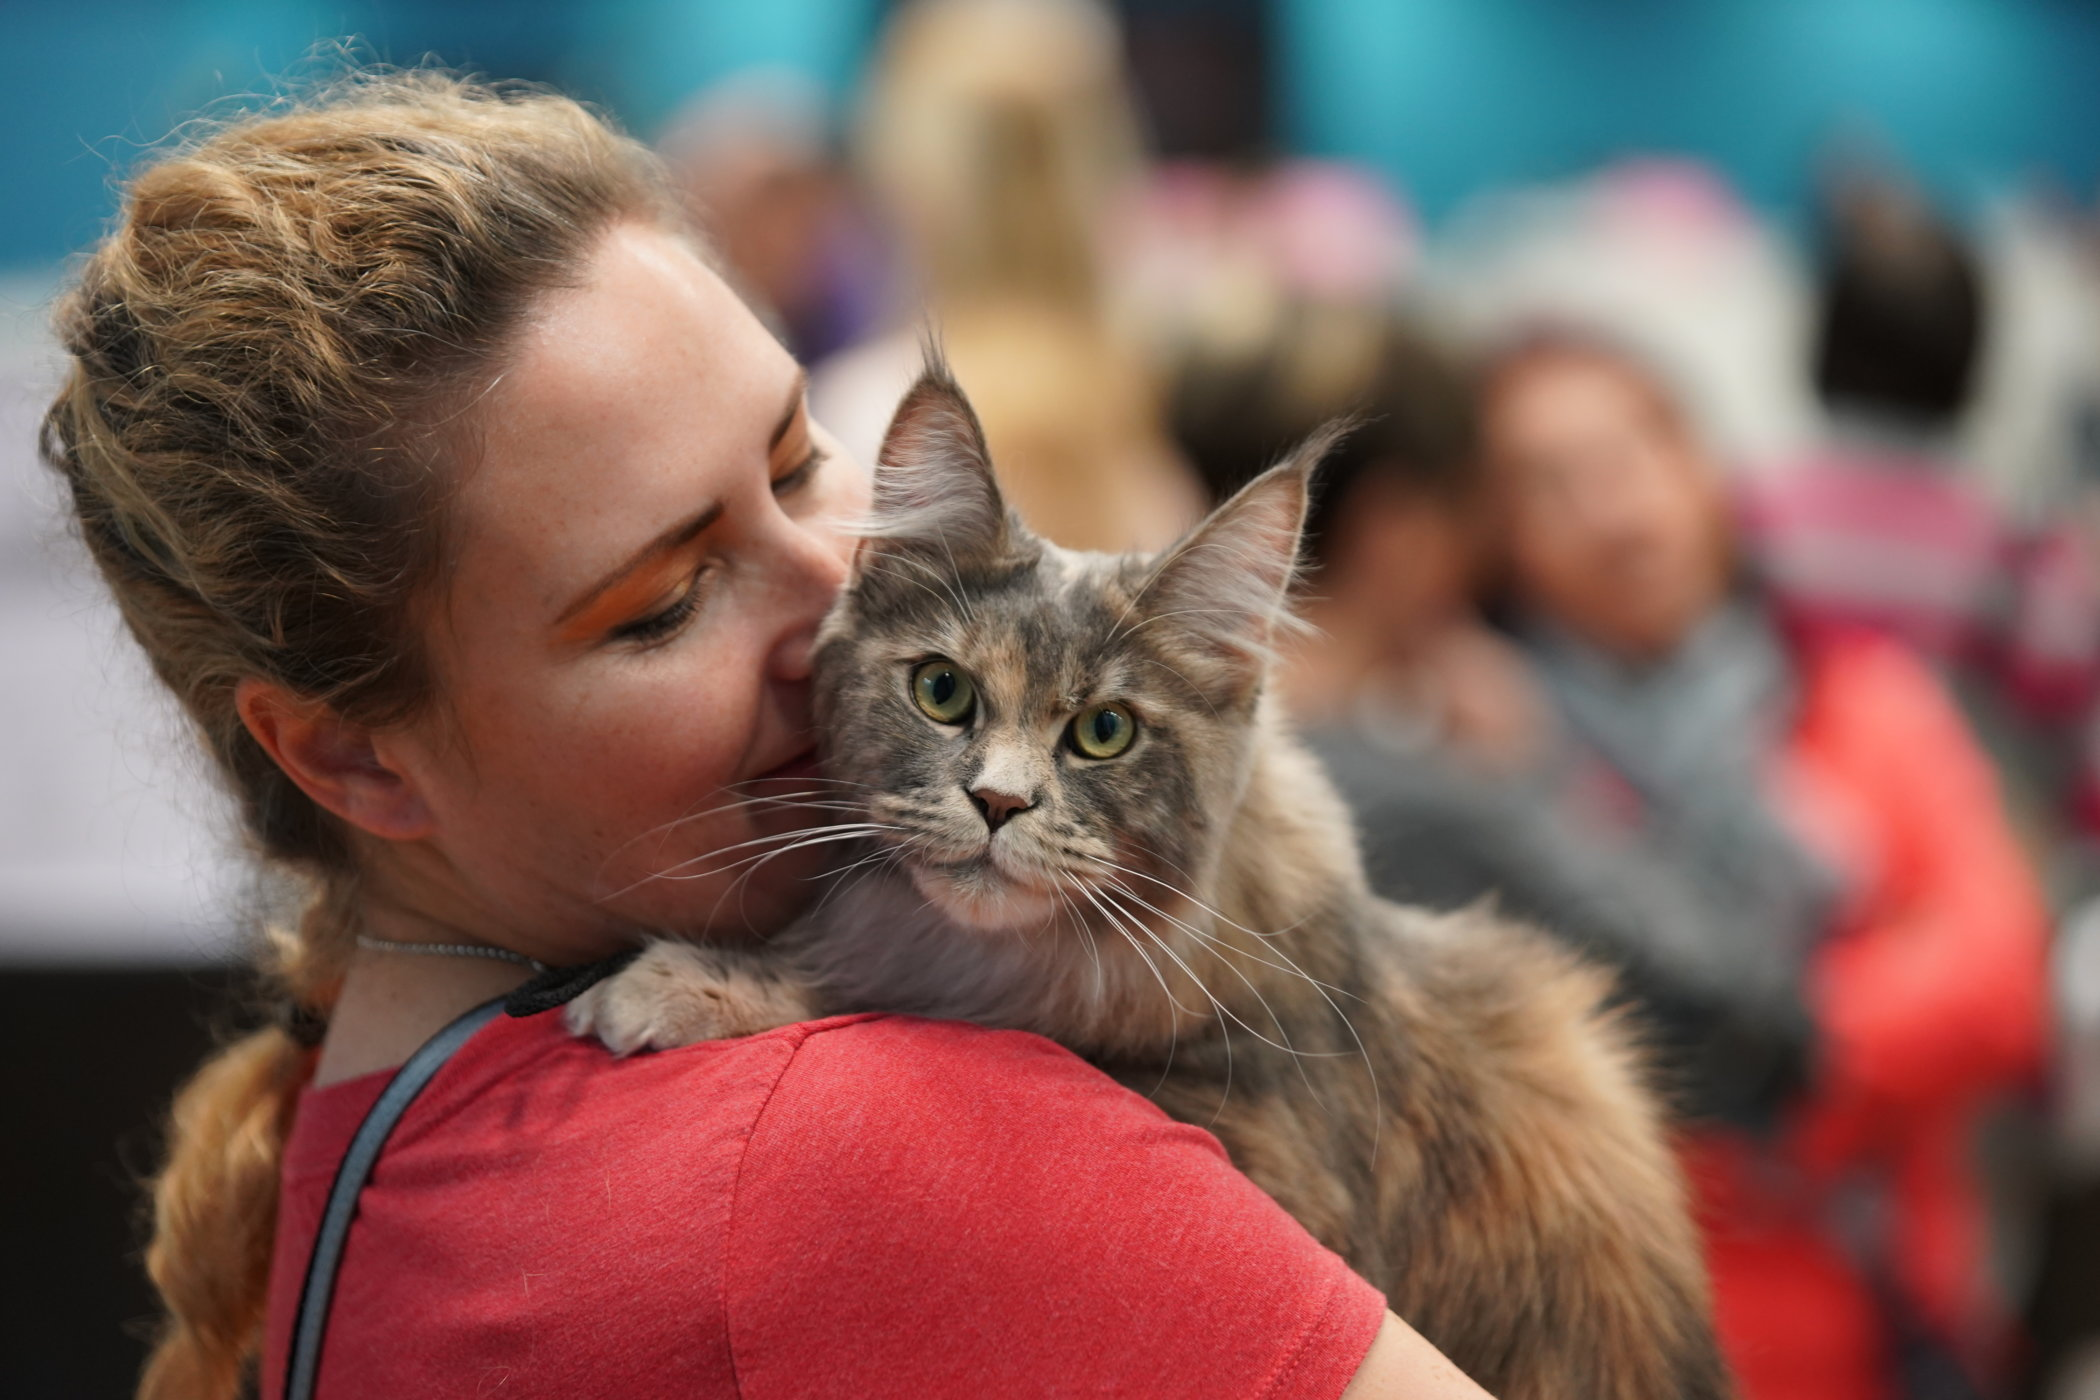 Join us at the May 2018 LondonCats International Cat Show